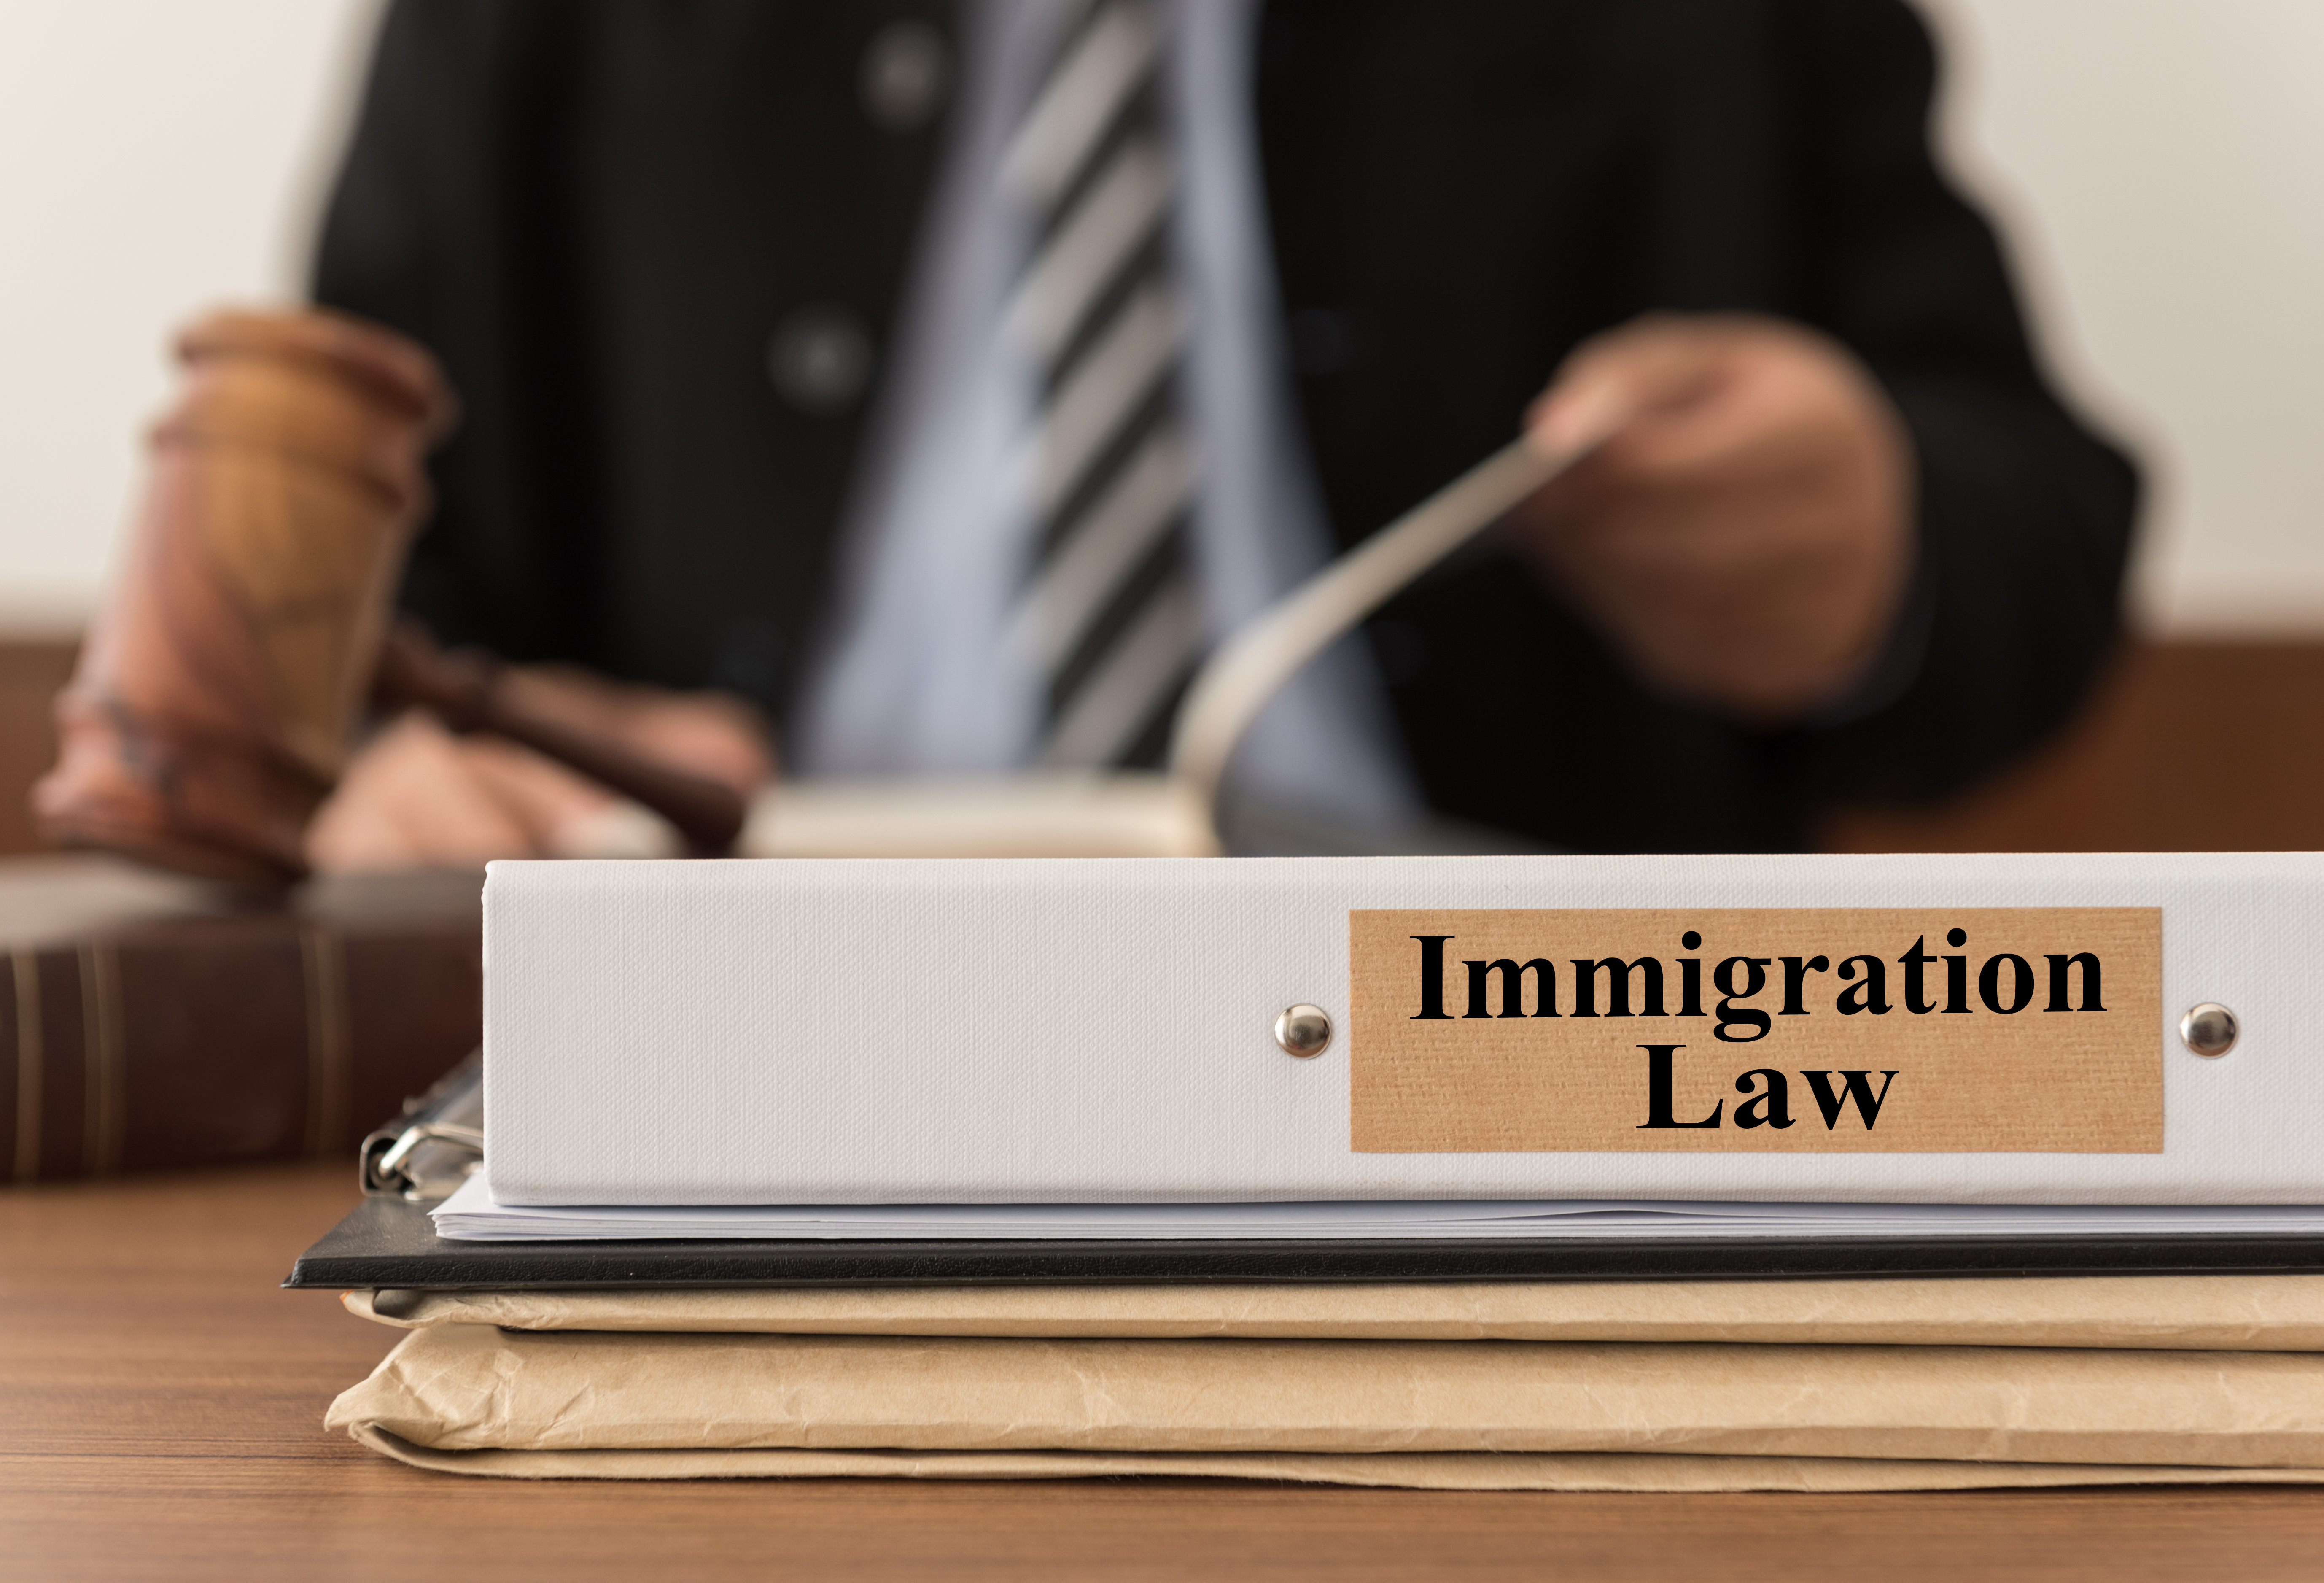 Migrating to the UK Just Got Harder: Should You Ask the Help of an Immigration Lawyer?